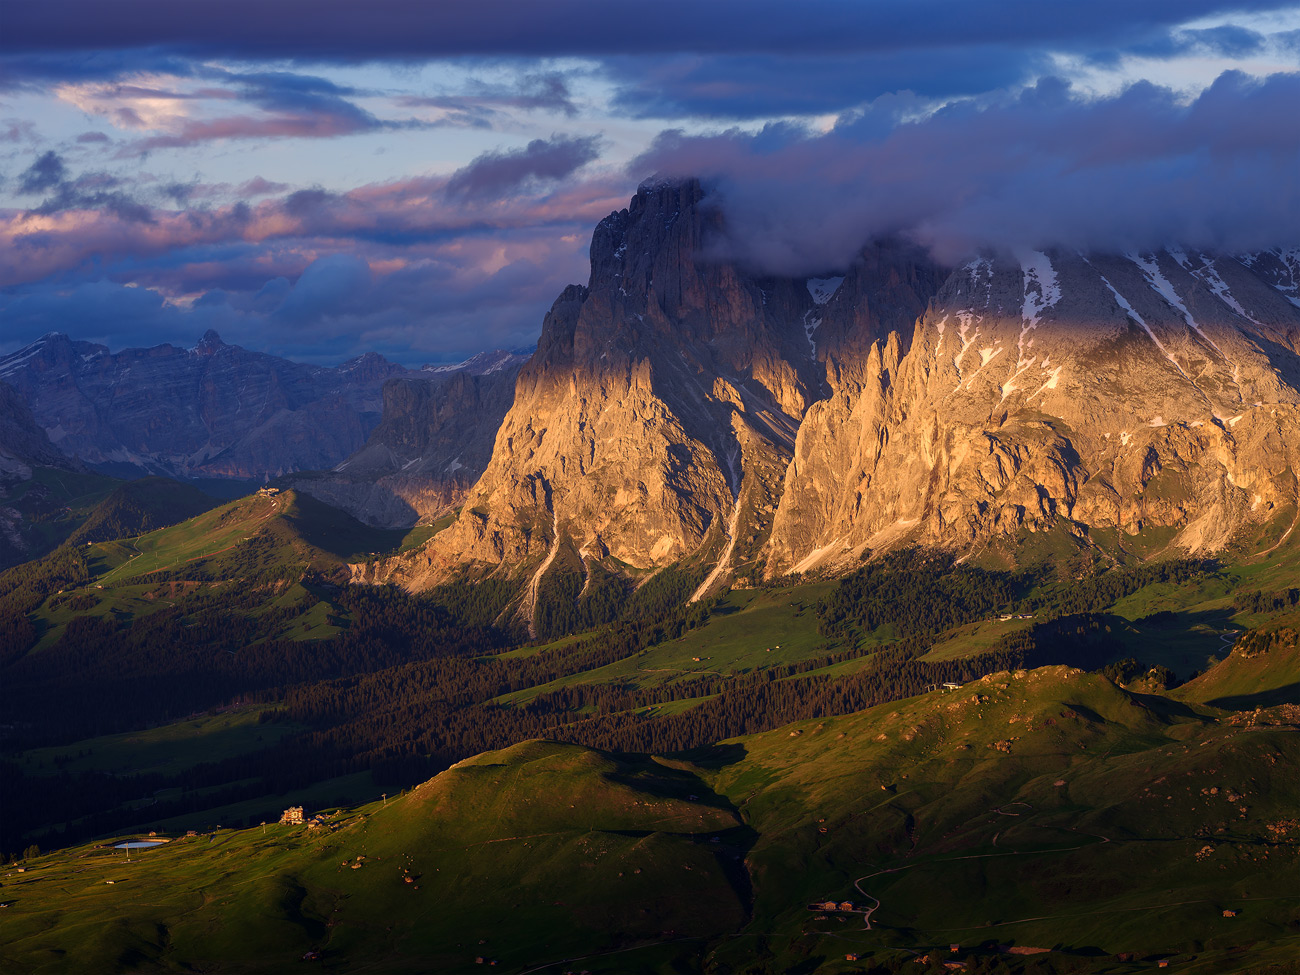 Langkofel Group, Dolomites, South Tyrol, Italy by Nils Leonhardt